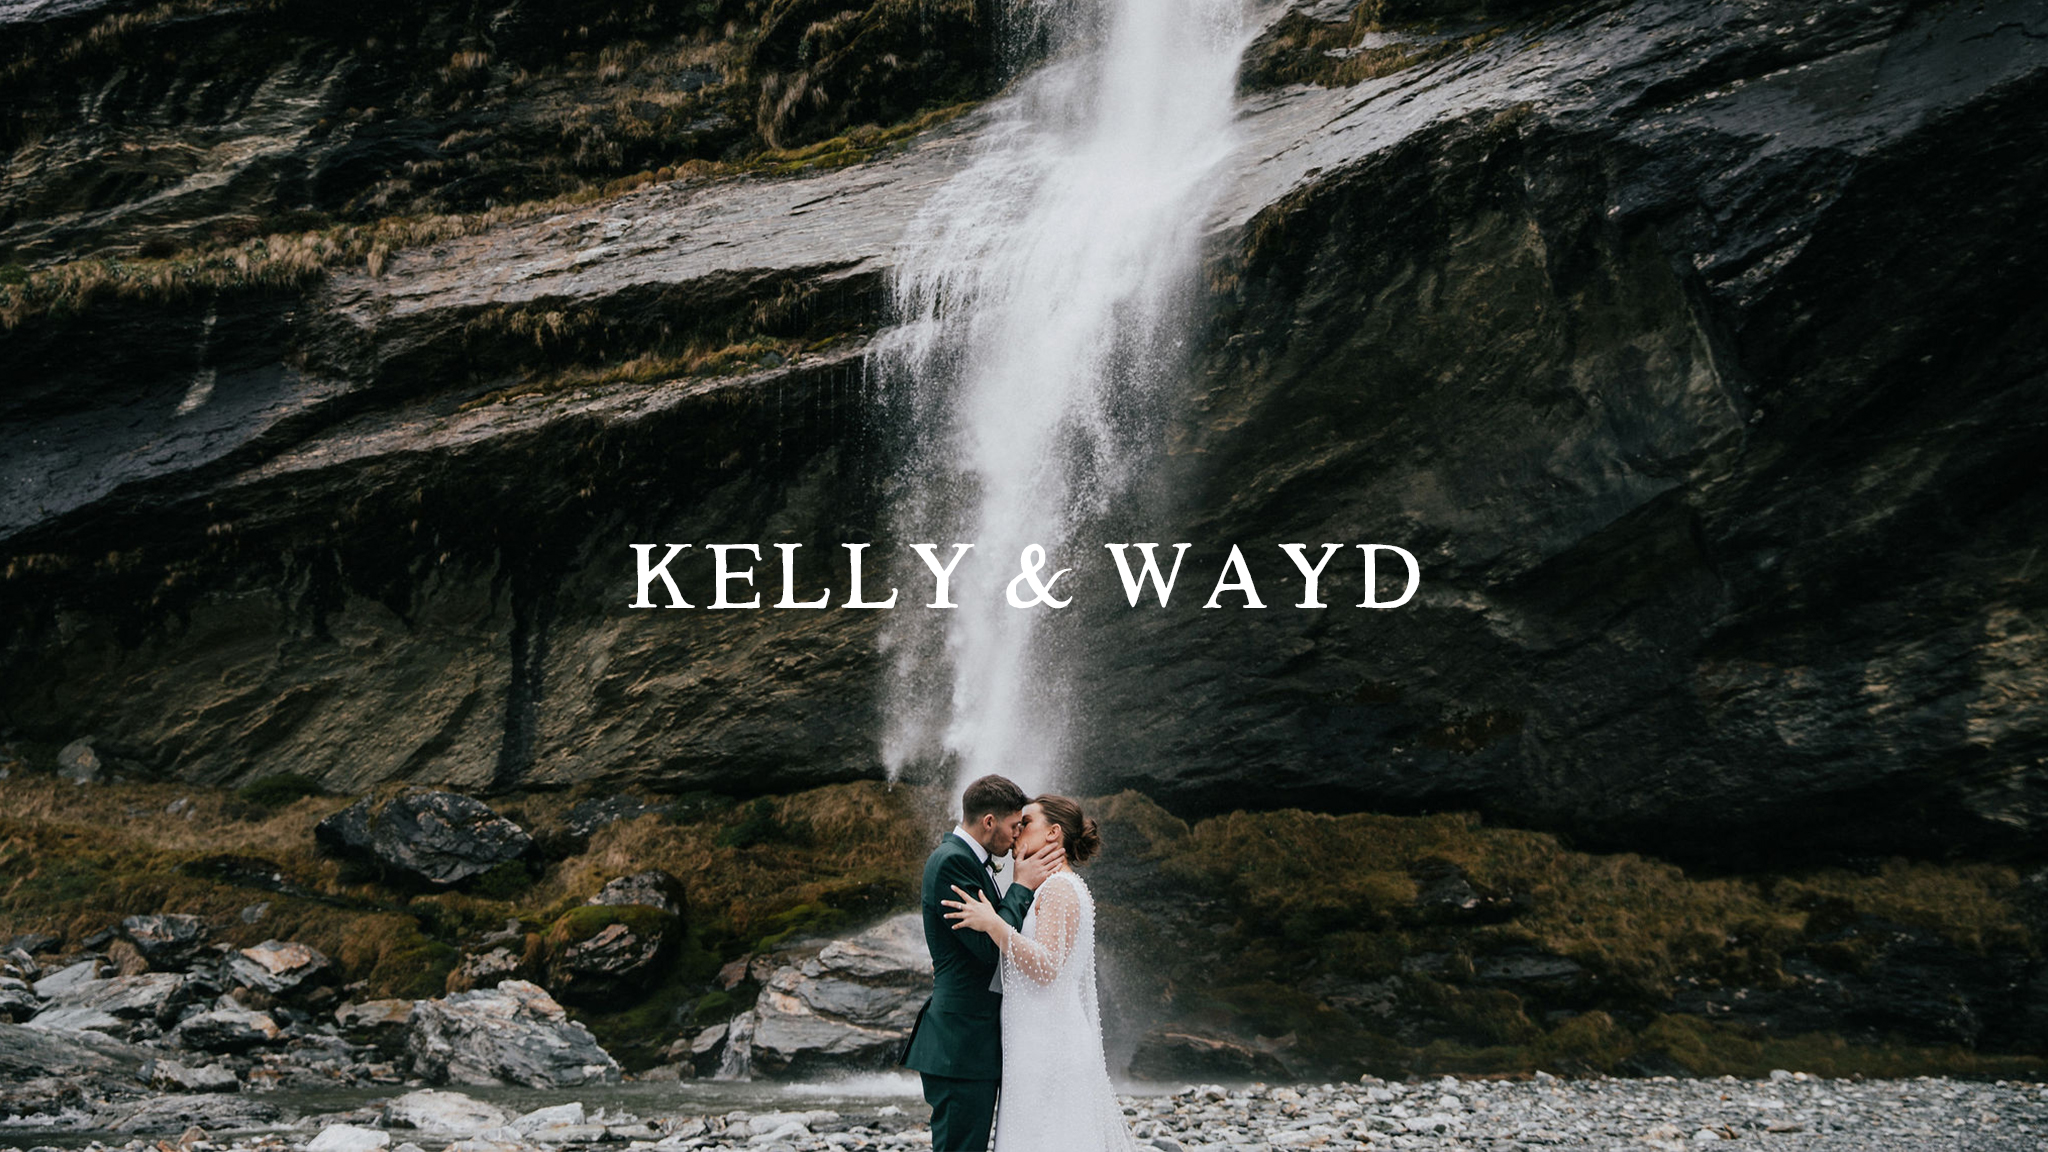 Kelly + Wayd | Queenstown, New Zealand | NZ High Country